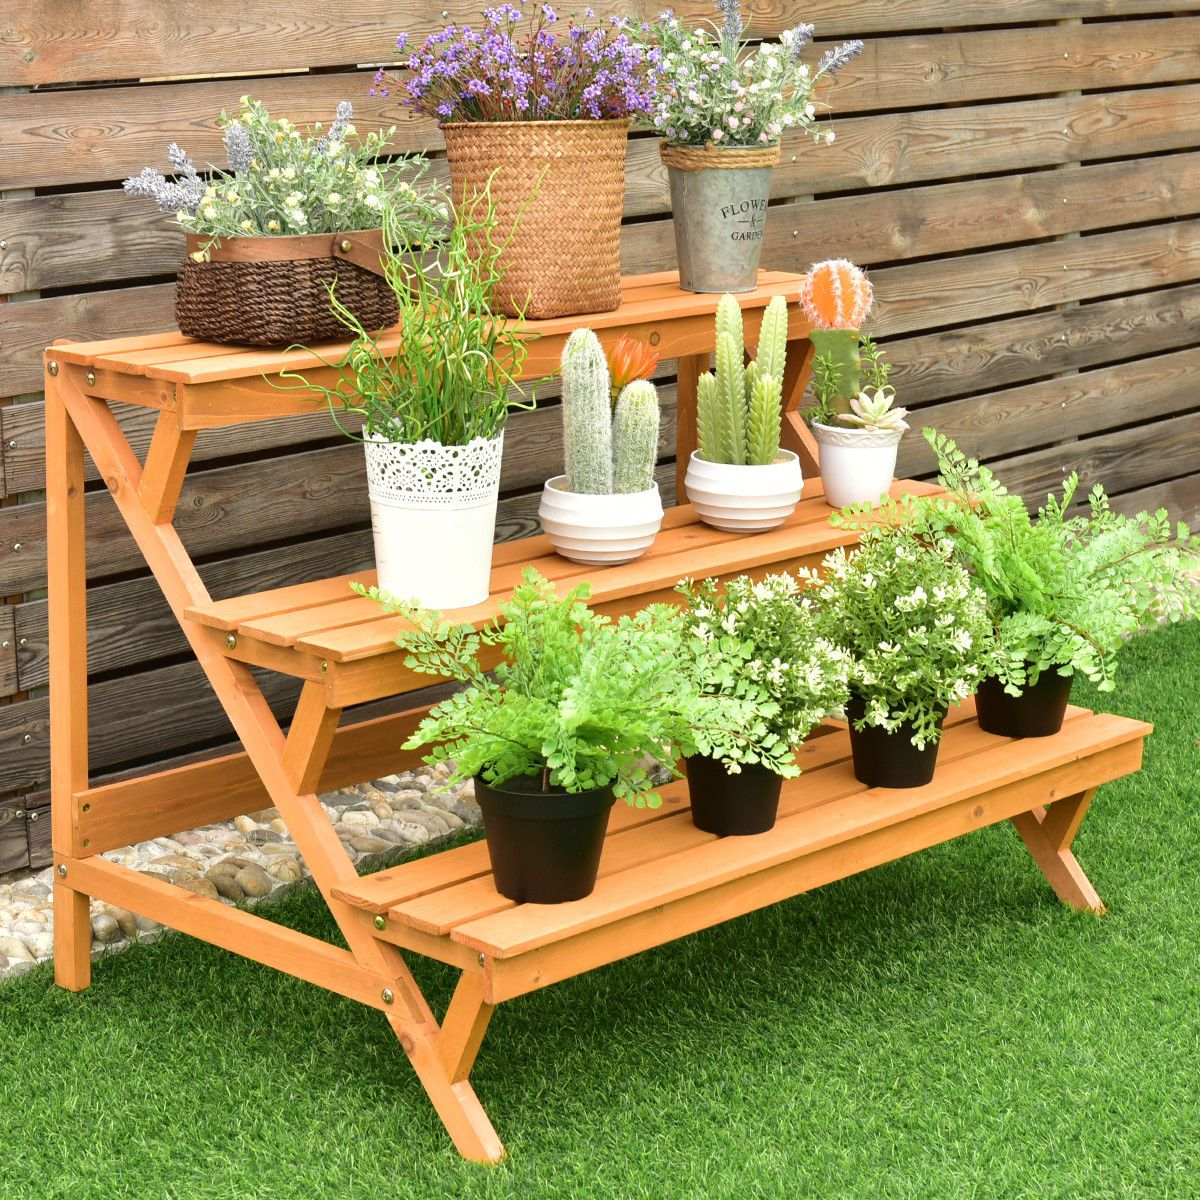 3 Tier Wood Plant Stand Flower Pot Display Rack Stand Holder Shelf Step Ladder 45 59 End Date 2019 01 04 Pallet Garden Benches Tiered Garden Wood Plant Stand